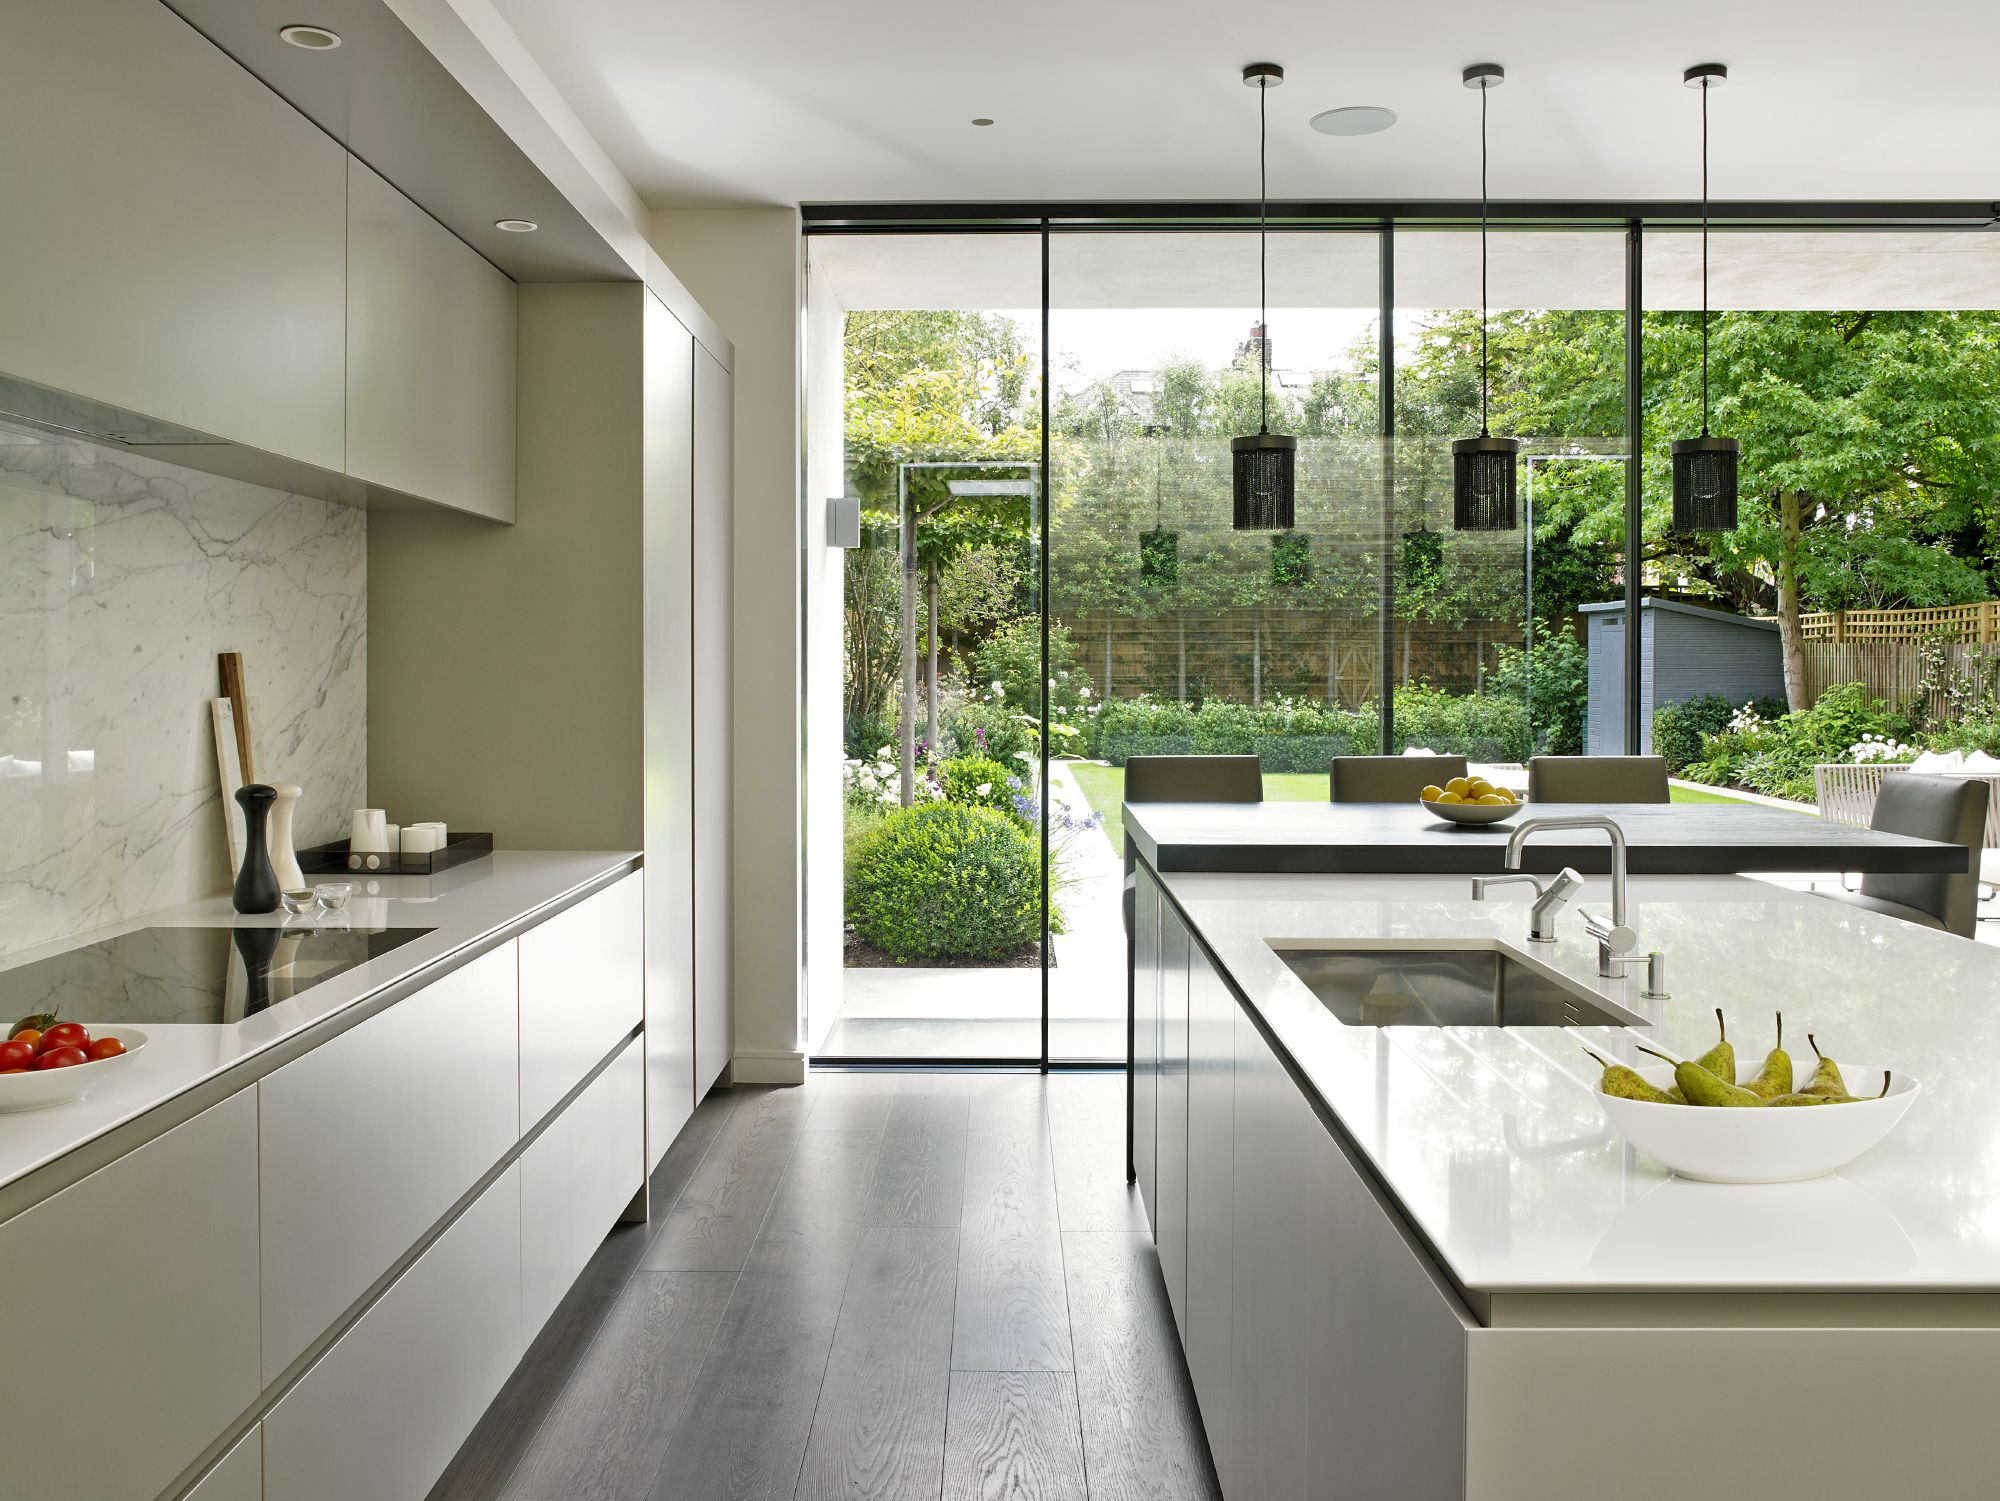 Grey kitchen modern kitchen london by lwk kitchens london - Sleek Minimalist Modern Kitchen Design In Wandsworth With Handle Less Cabinets Large